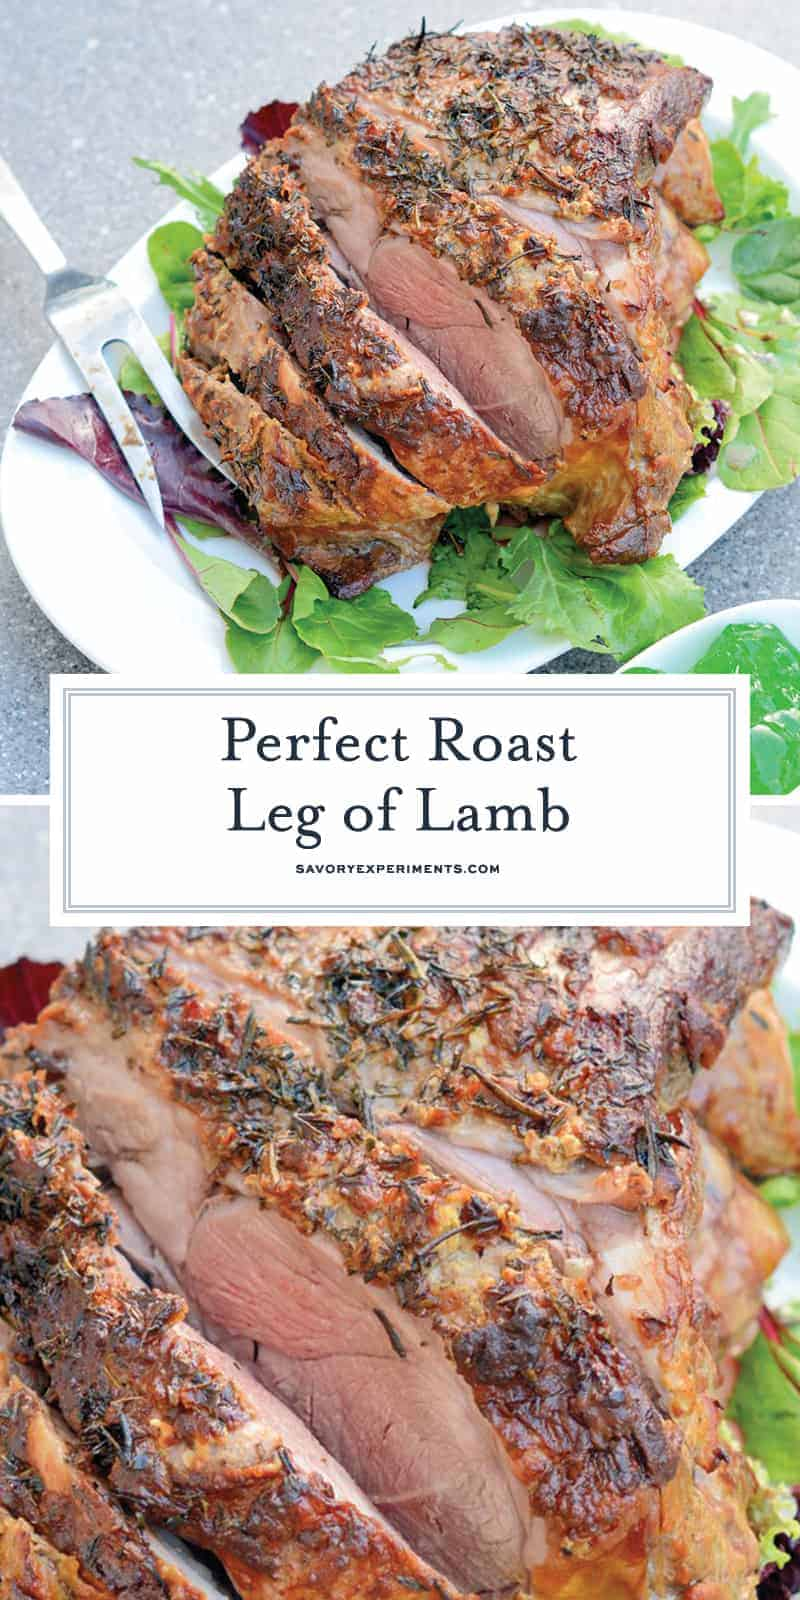 Leg of Lamb is an easy lamb recipe using a layer of fresh herbs and seasonings and high temperatures sear to form a nice crust leaving the instead nice and juicy. #legoflamb #roastlamb #easterlamb www.savoryexperiments.com